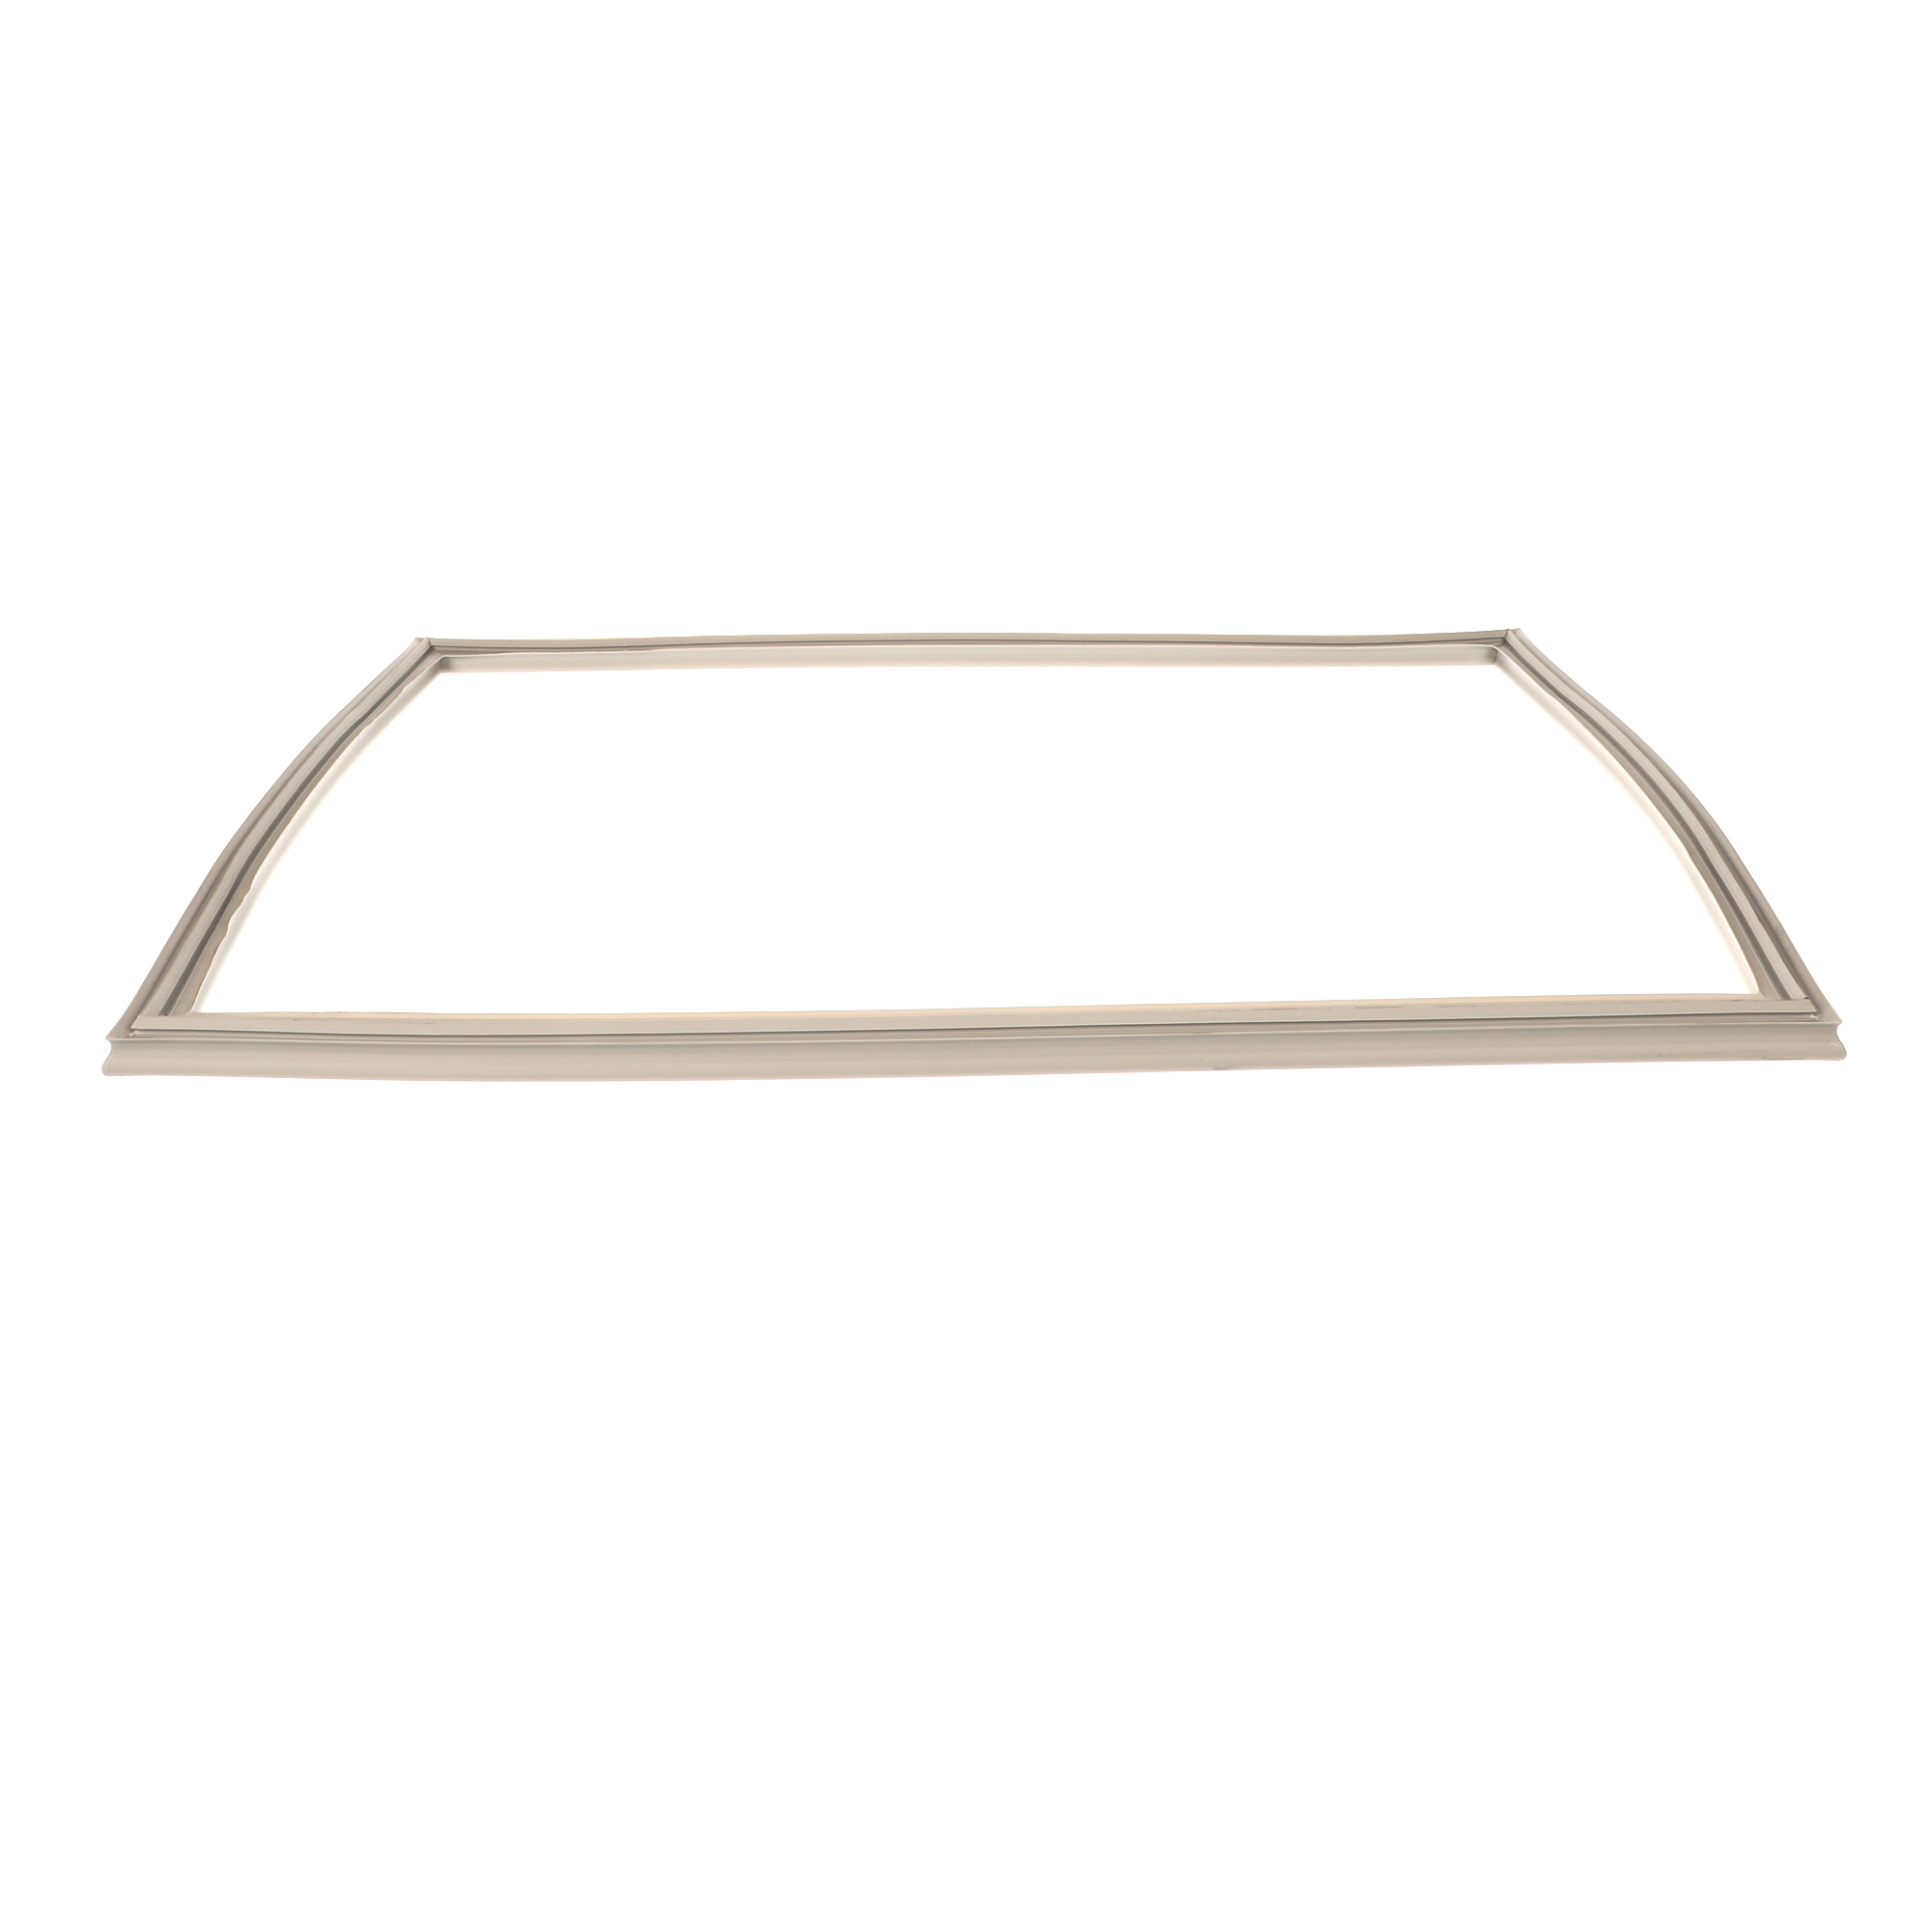 DOOR GASKET; 405X570 MM